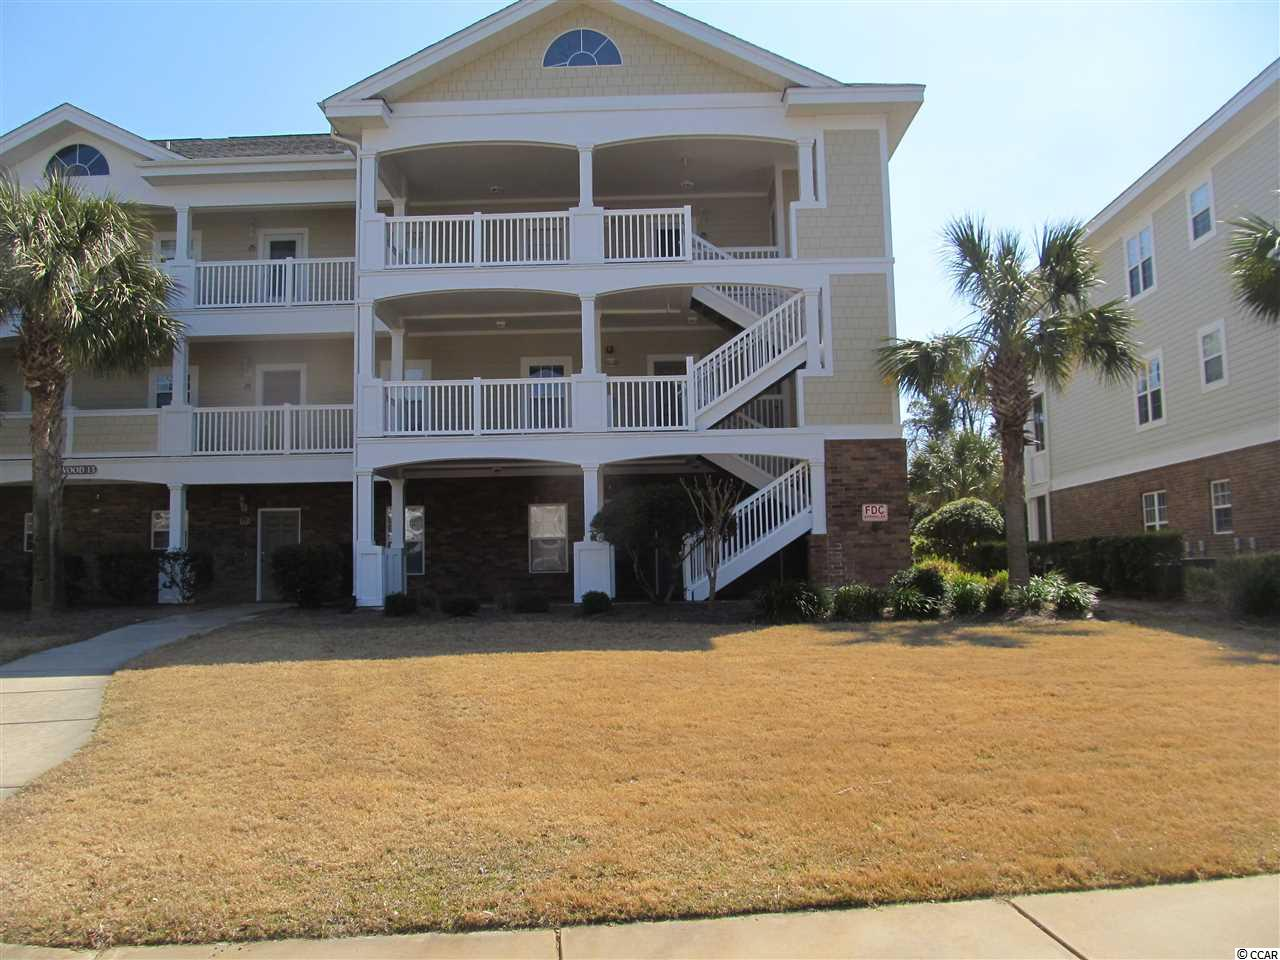 SECOND FLOOR CORNER UNIT, FRESHLY PAINTED IN 2020 WITH NEW CARPET, LOTS OF SUNLIGHT AND SPACIOUS LIVING ROOM. THE CONDO HAS BEEN ON LONG TERM RENTAL.  ALL THE AMENITIES BAREFOOT HAS TO OFFER.